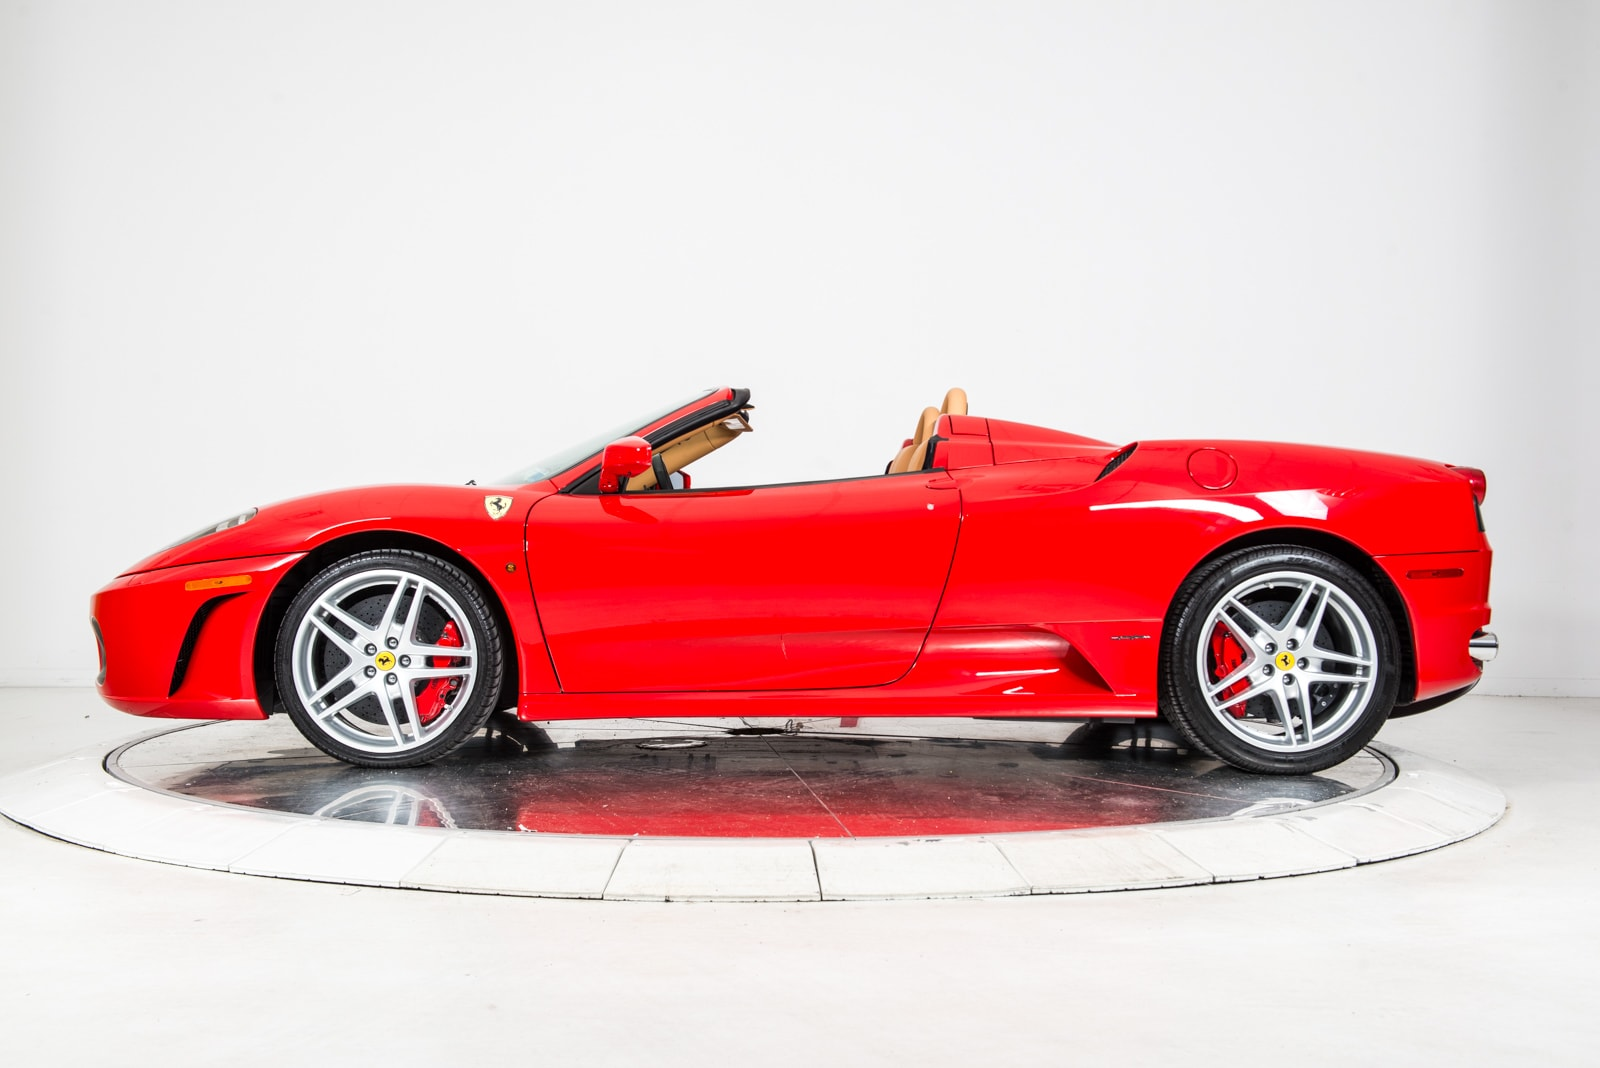 used 2009 ferrari f430 spider f1 for sale plainview near long island ny vin zffew59a290167990. Black Bedroom Furniture Sets. Home Design Ideas